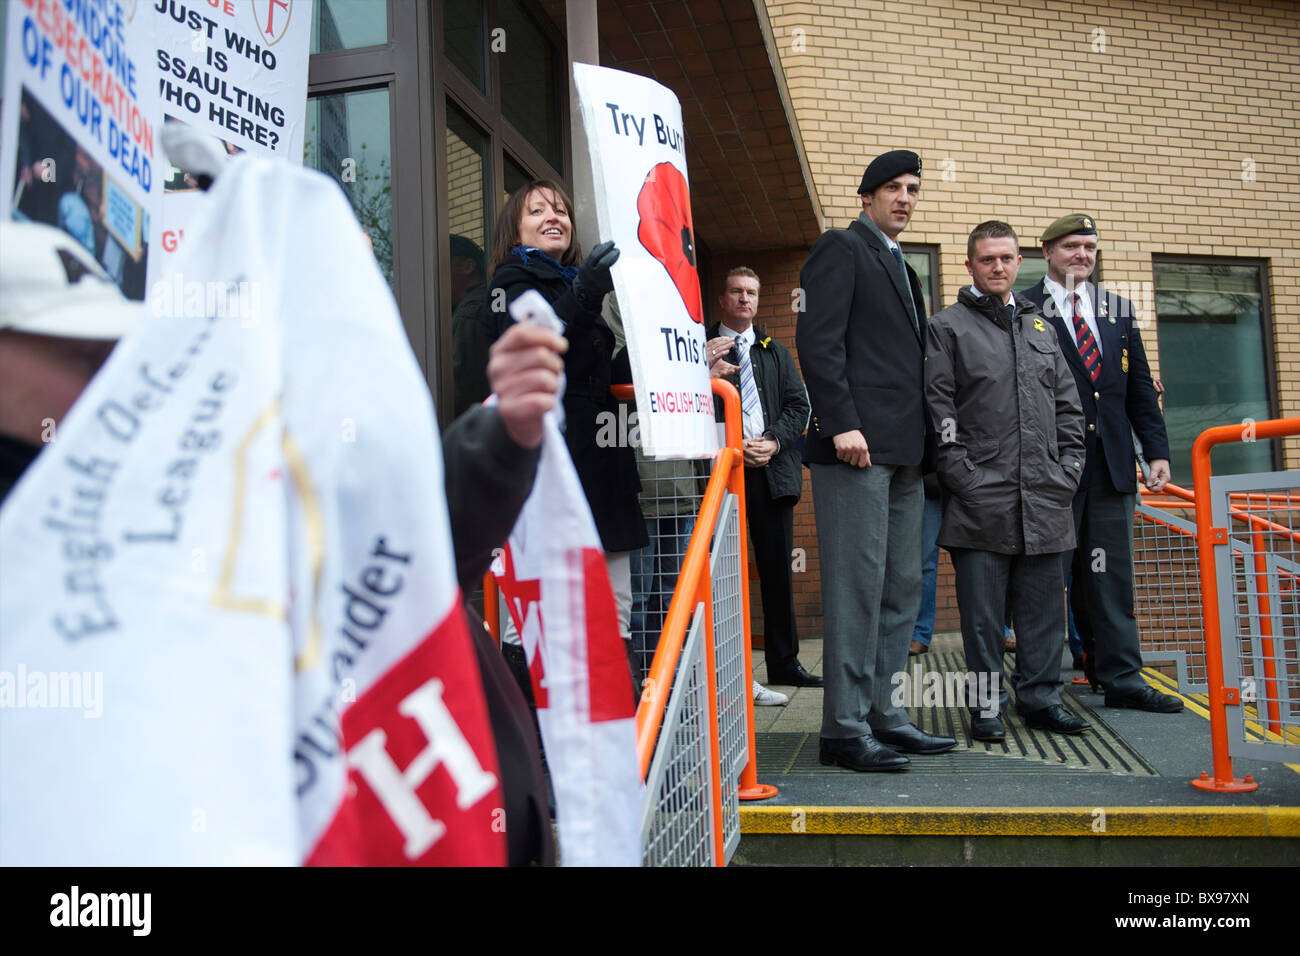 English Defence League (EDL) leader Tommy Robinson, also known as Stephen Lennon, emerges from the West London Magistrates - Stock Image